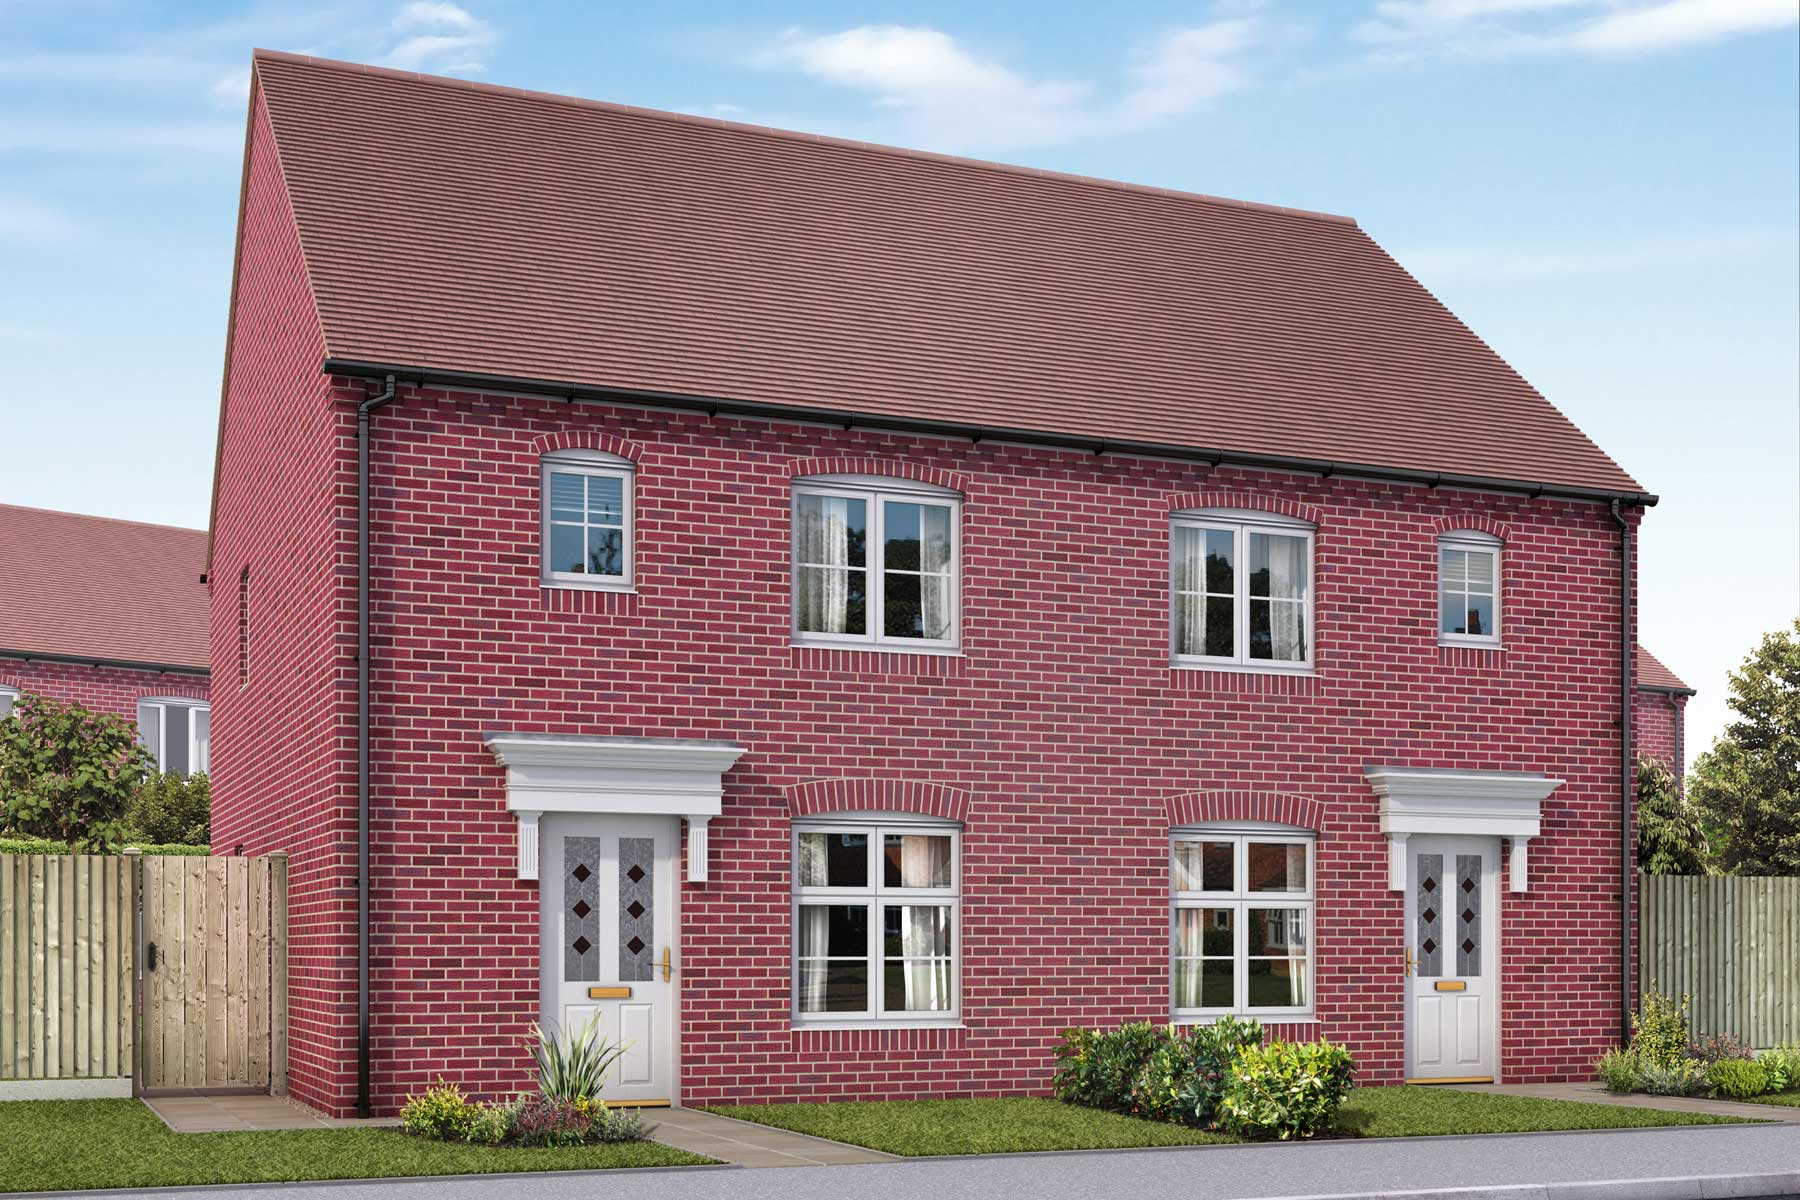 Artists impression of a typical Wessex home